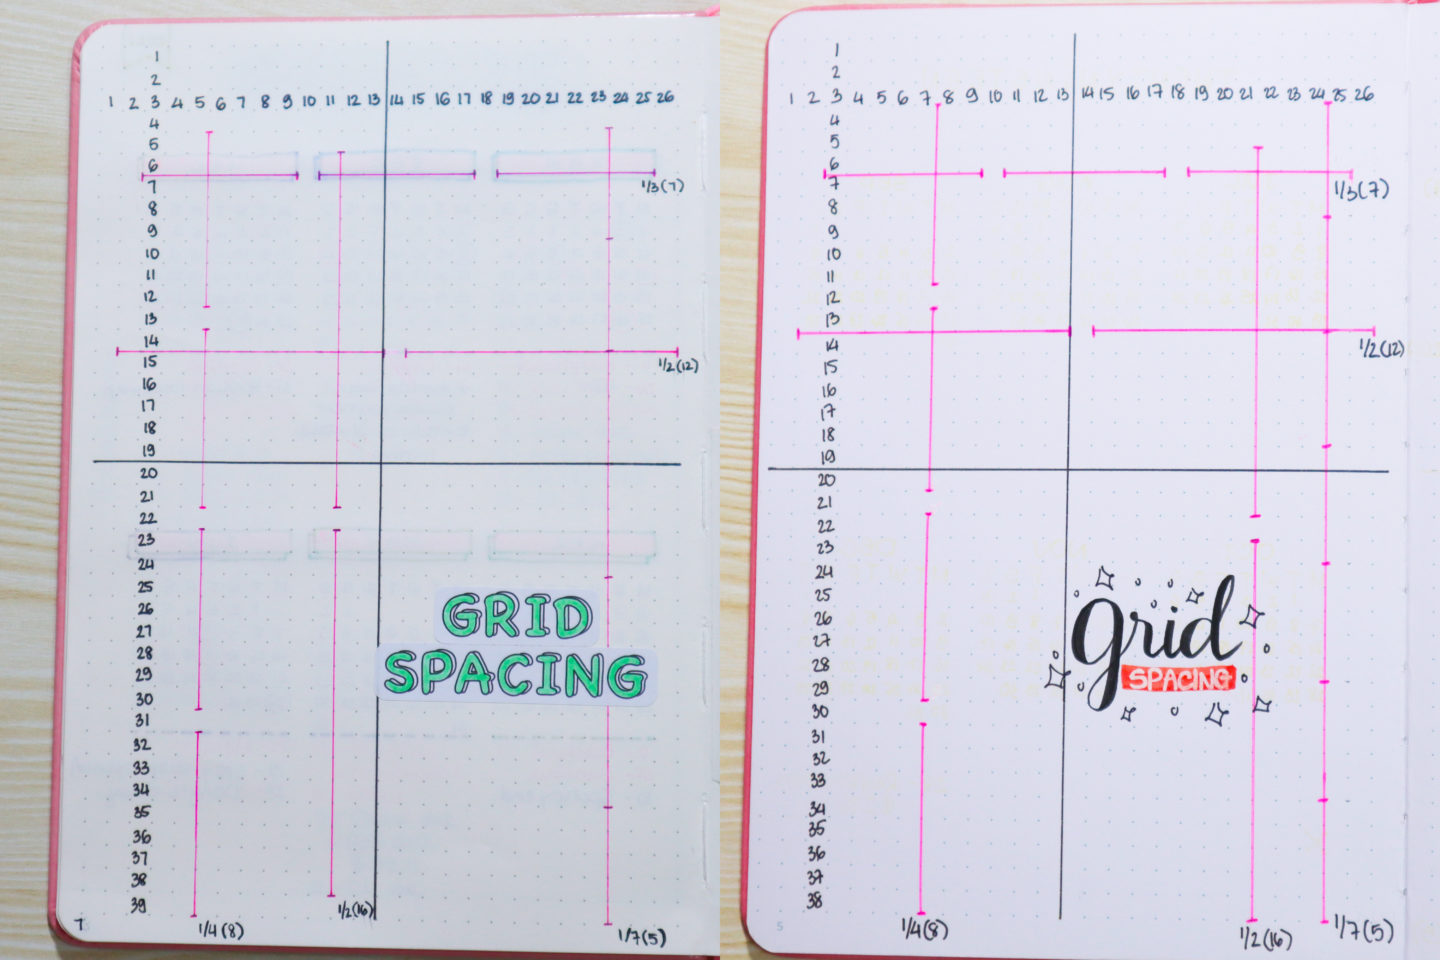 Bullet Journal Grid Spacing: How to Setup One in Your Notebook